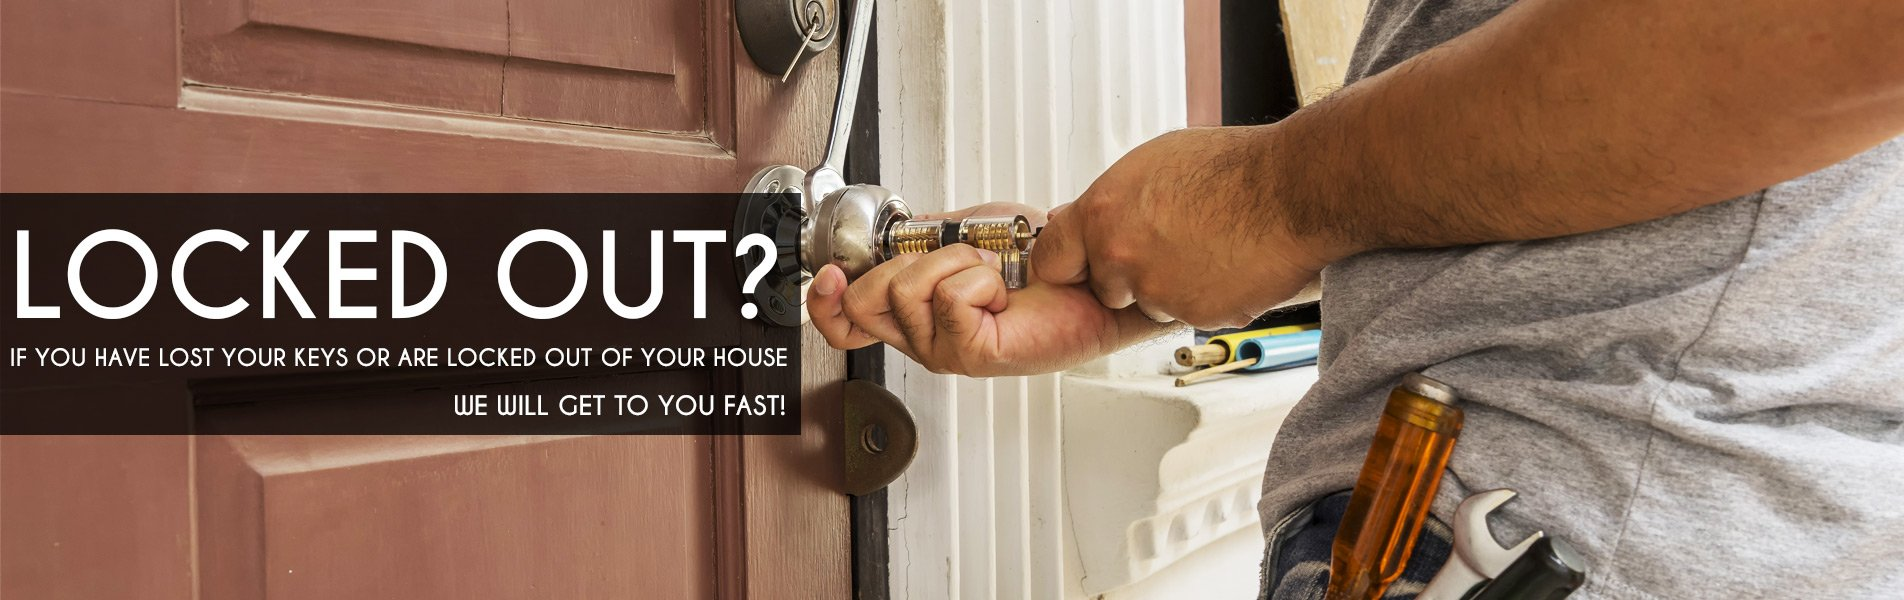 Wayne NJ Locksmith Store Wayne, NJ 973-765-6190